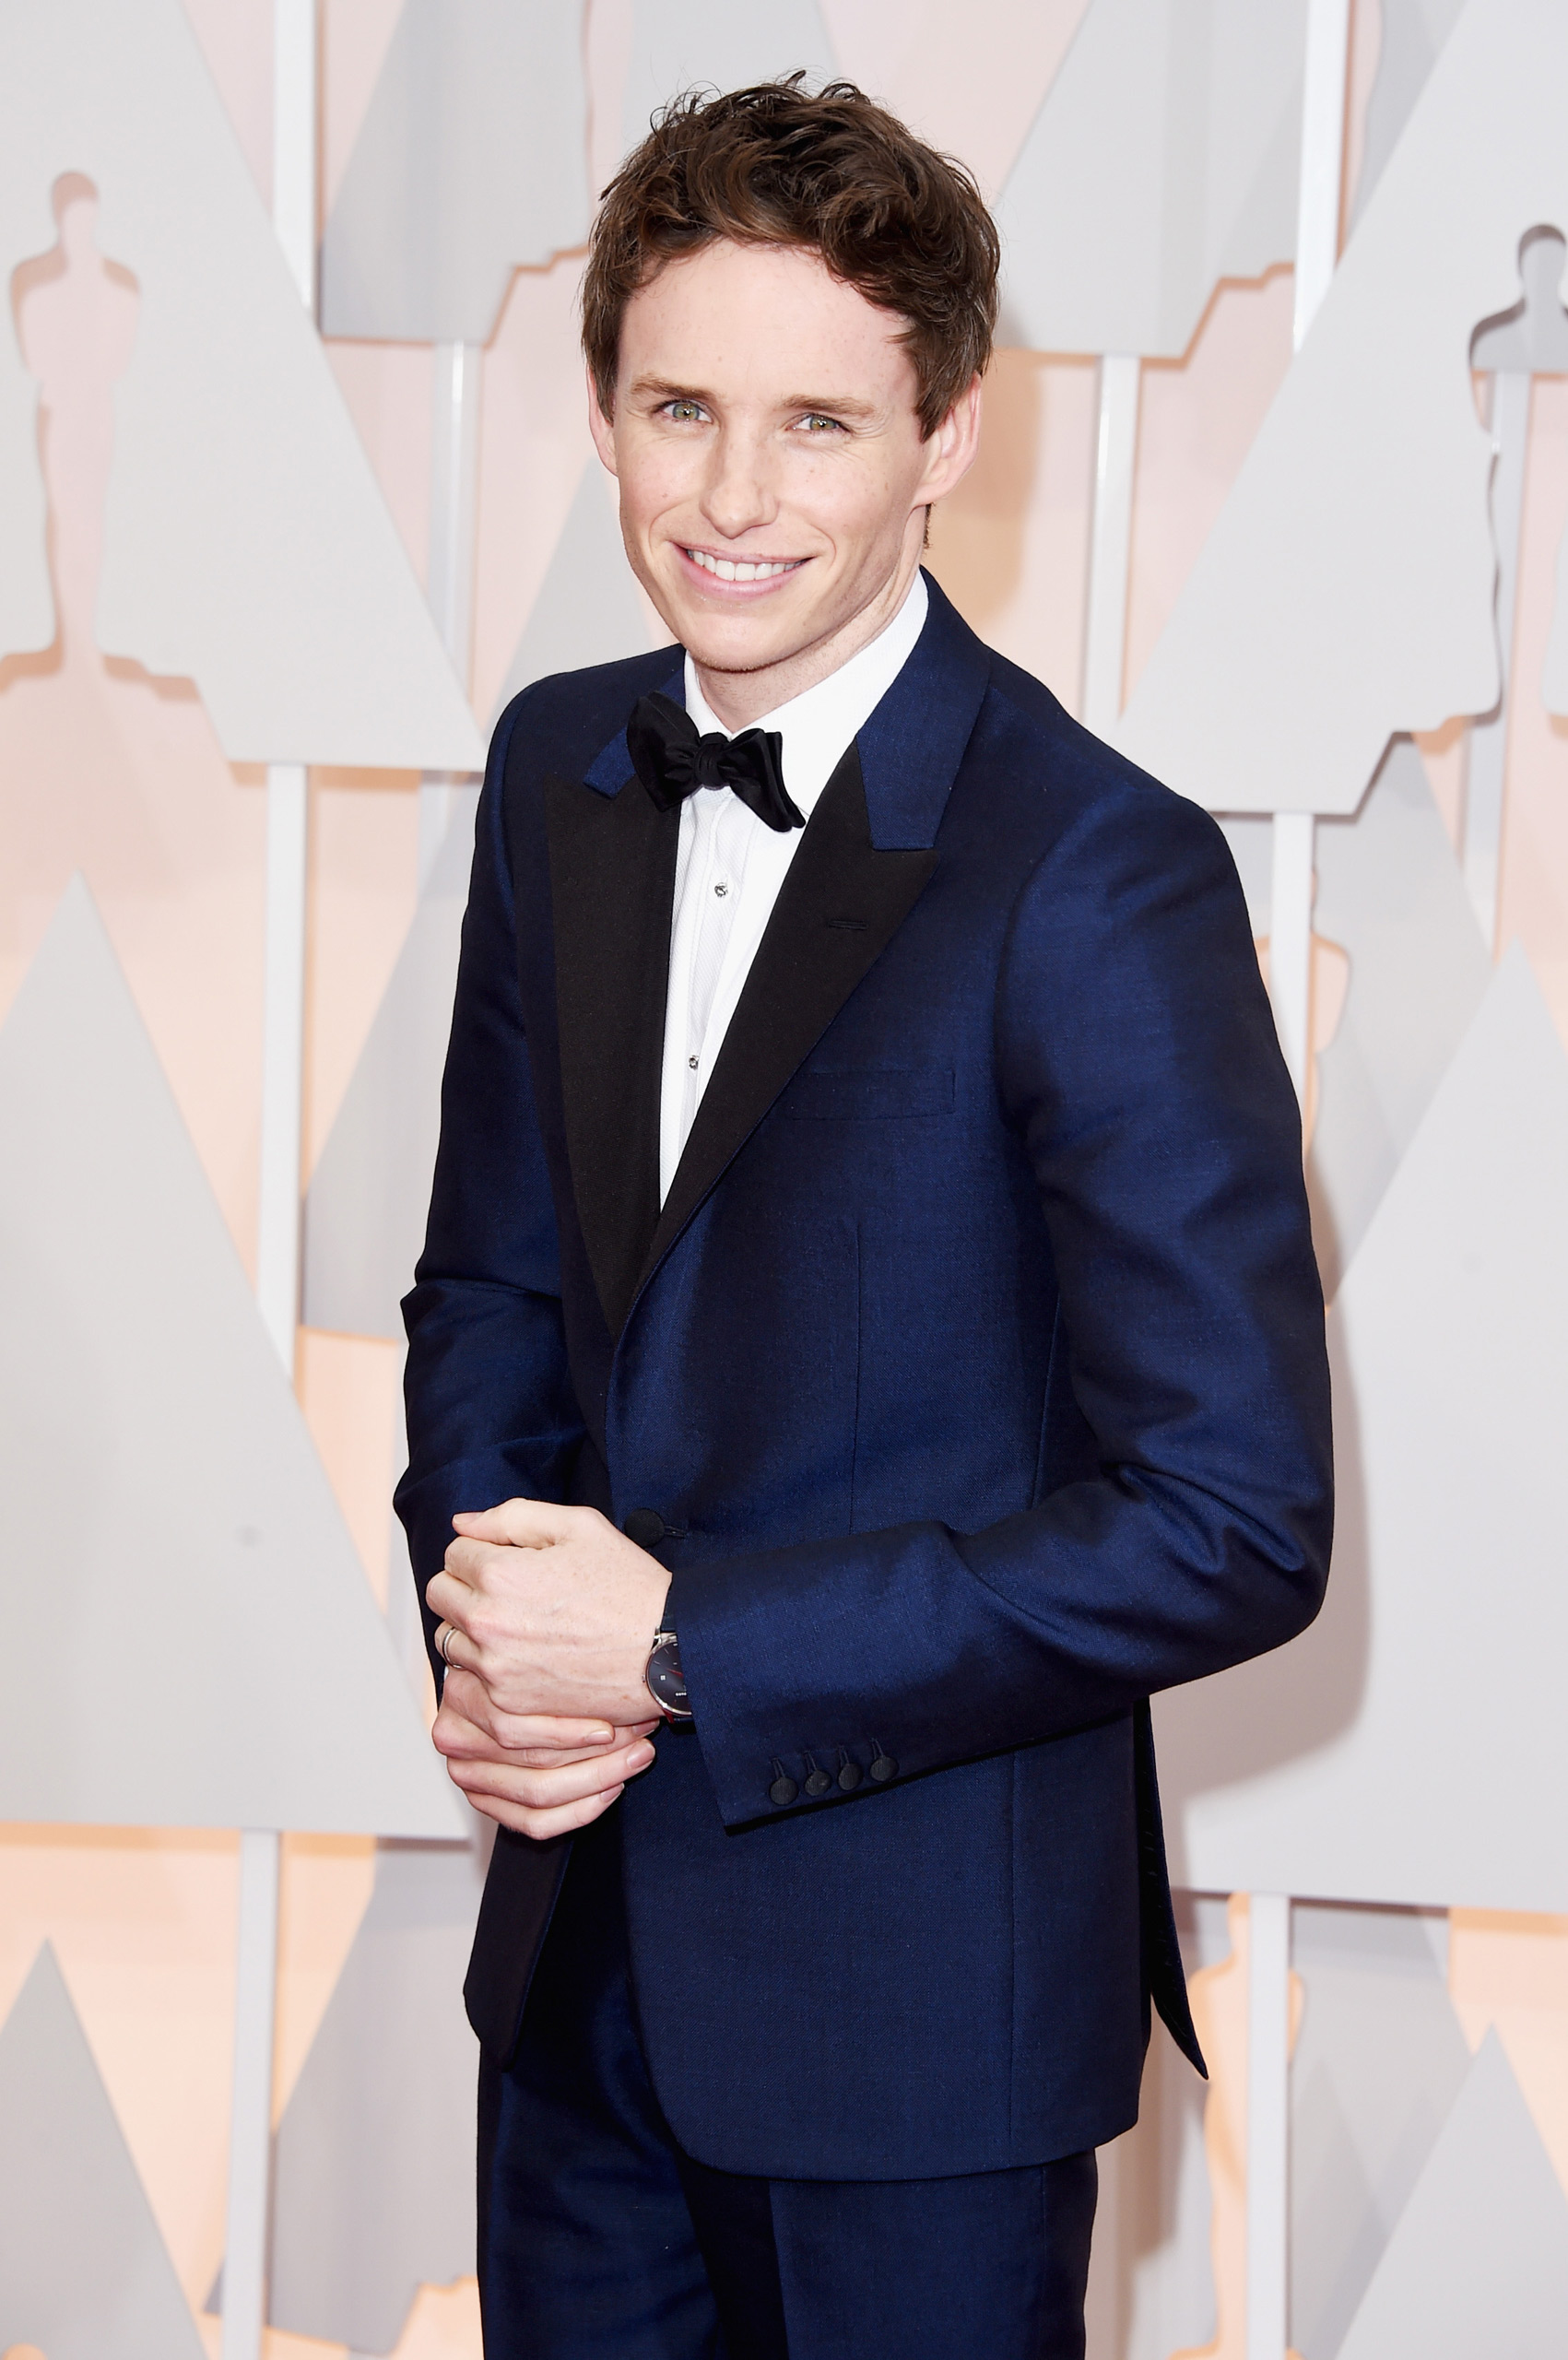 Eddie Redmayne attends the 87th Annual Academy Awards on Feb. 22, 2015 in Hollywood, Calif.